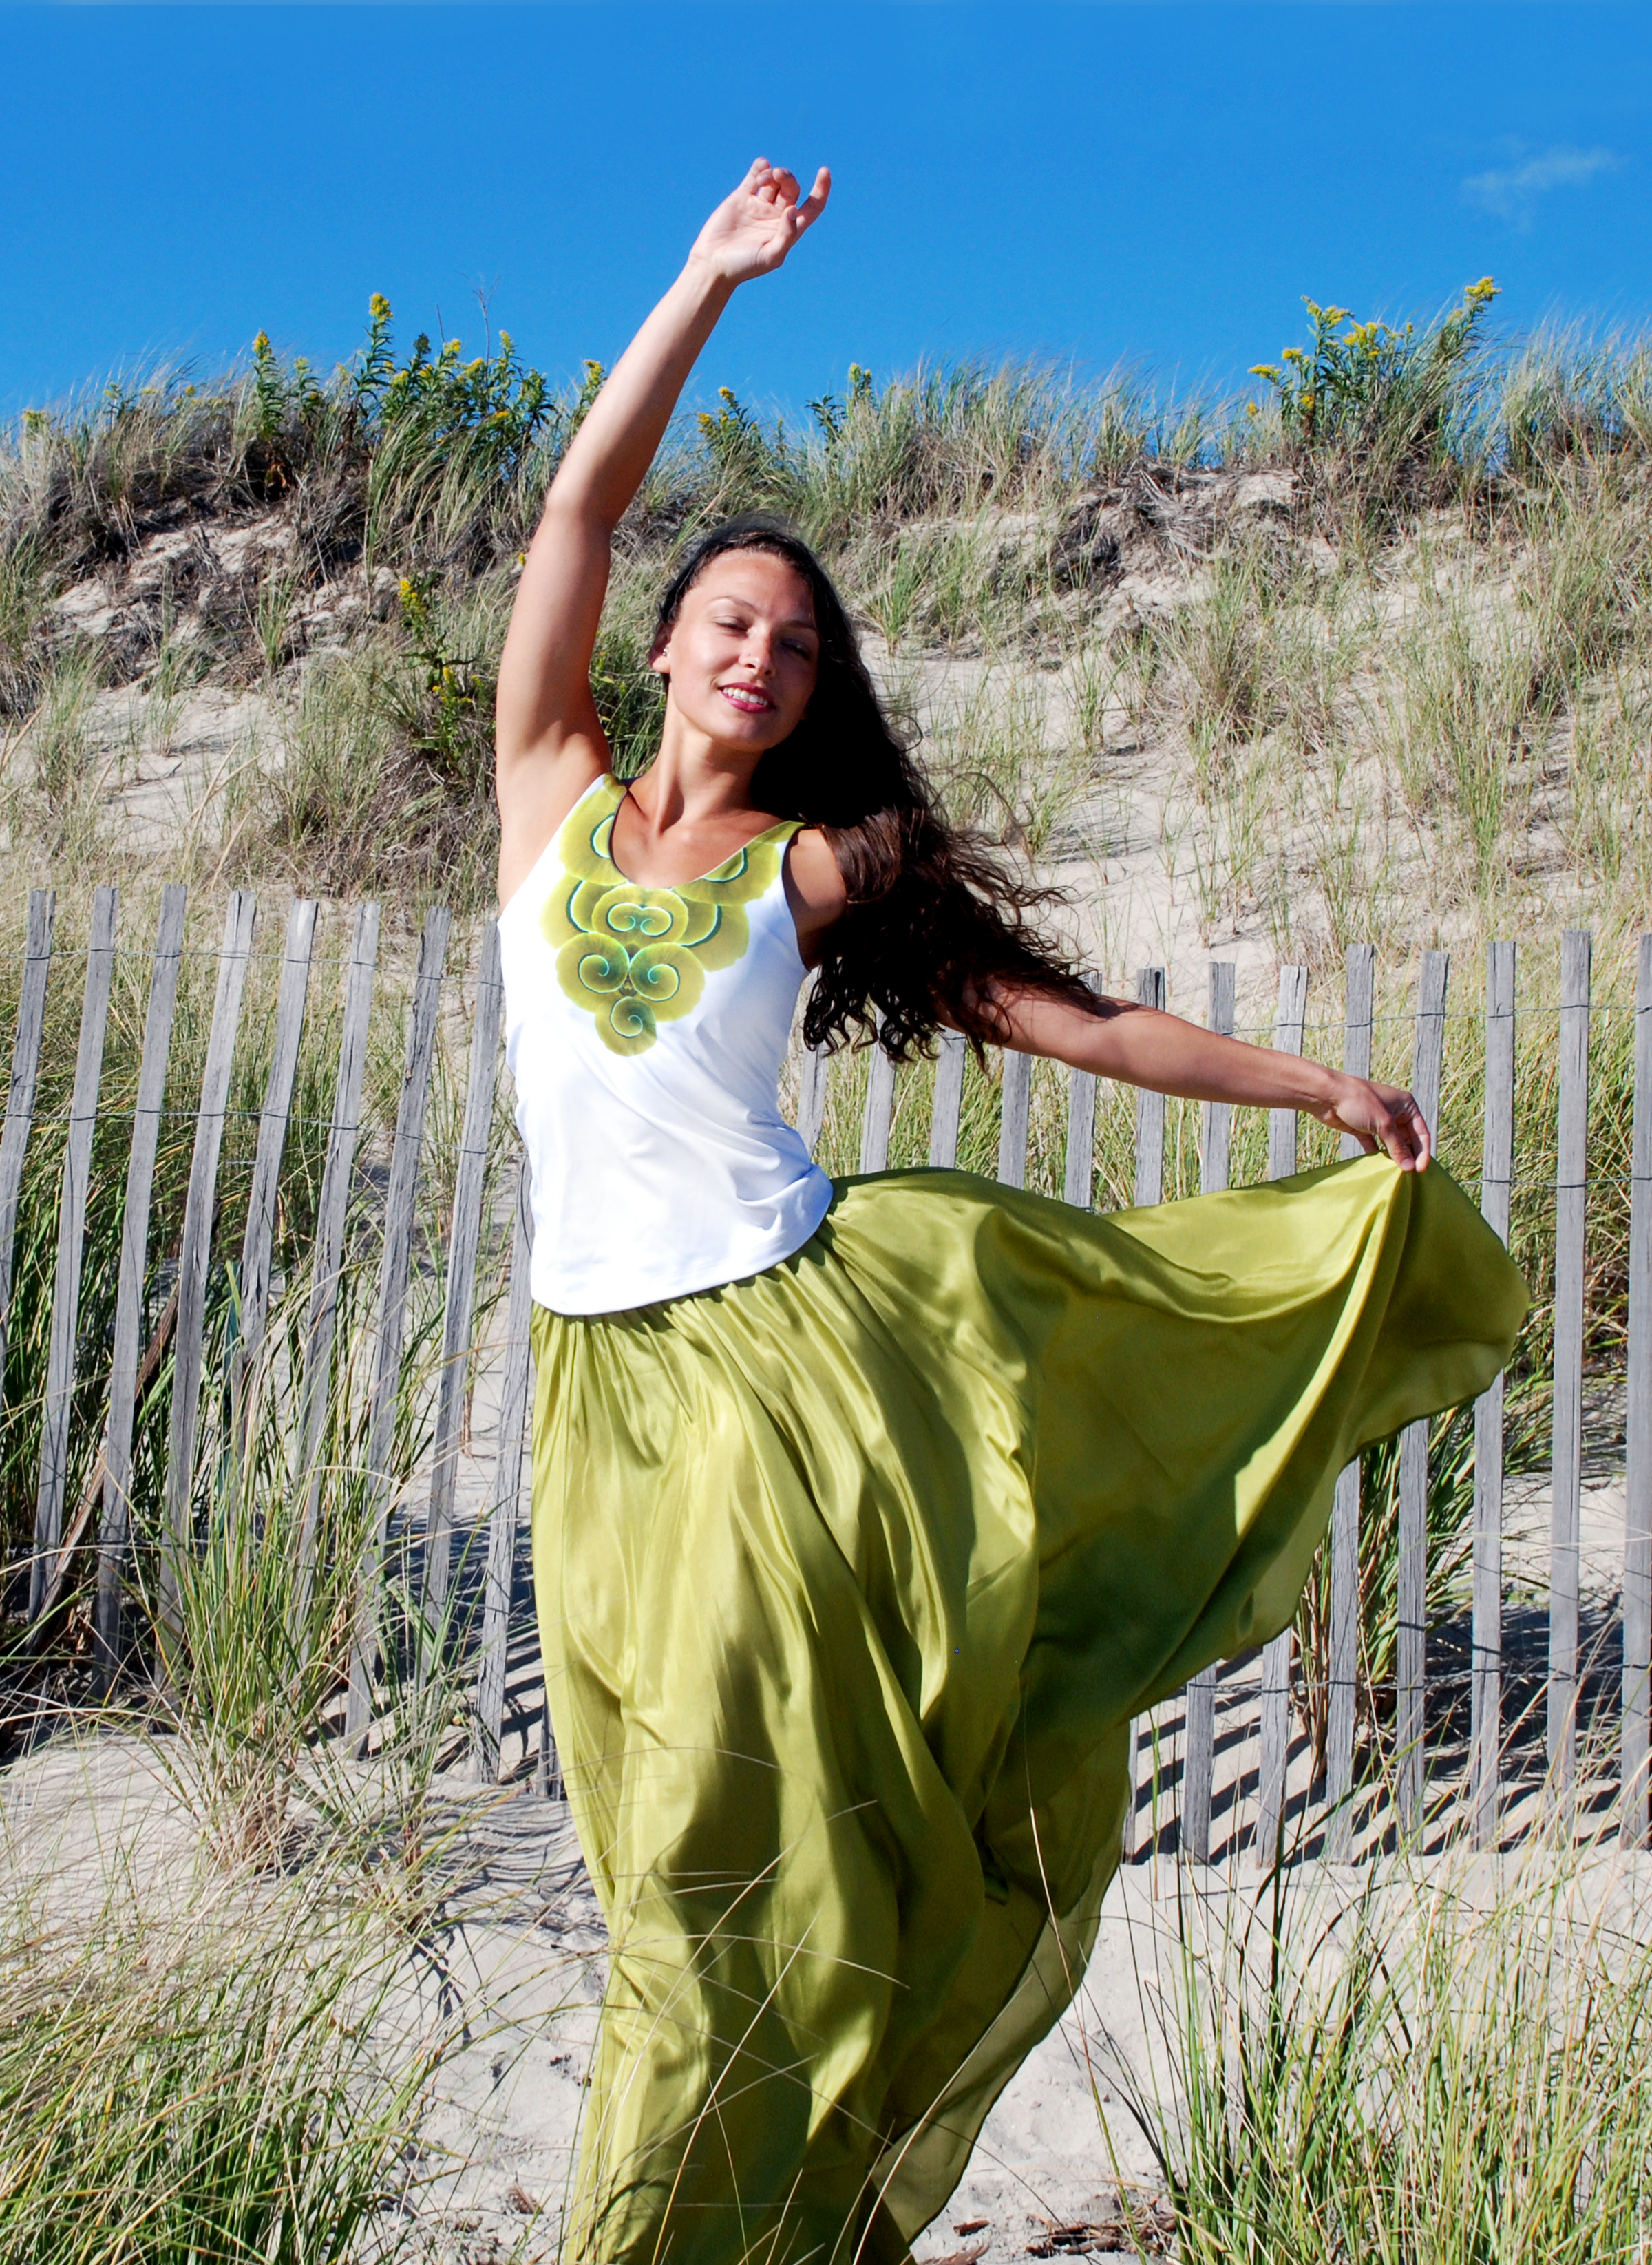 tiwia dive deep emily green silk skirt scoop neck arm above head 1 gallery shots.png